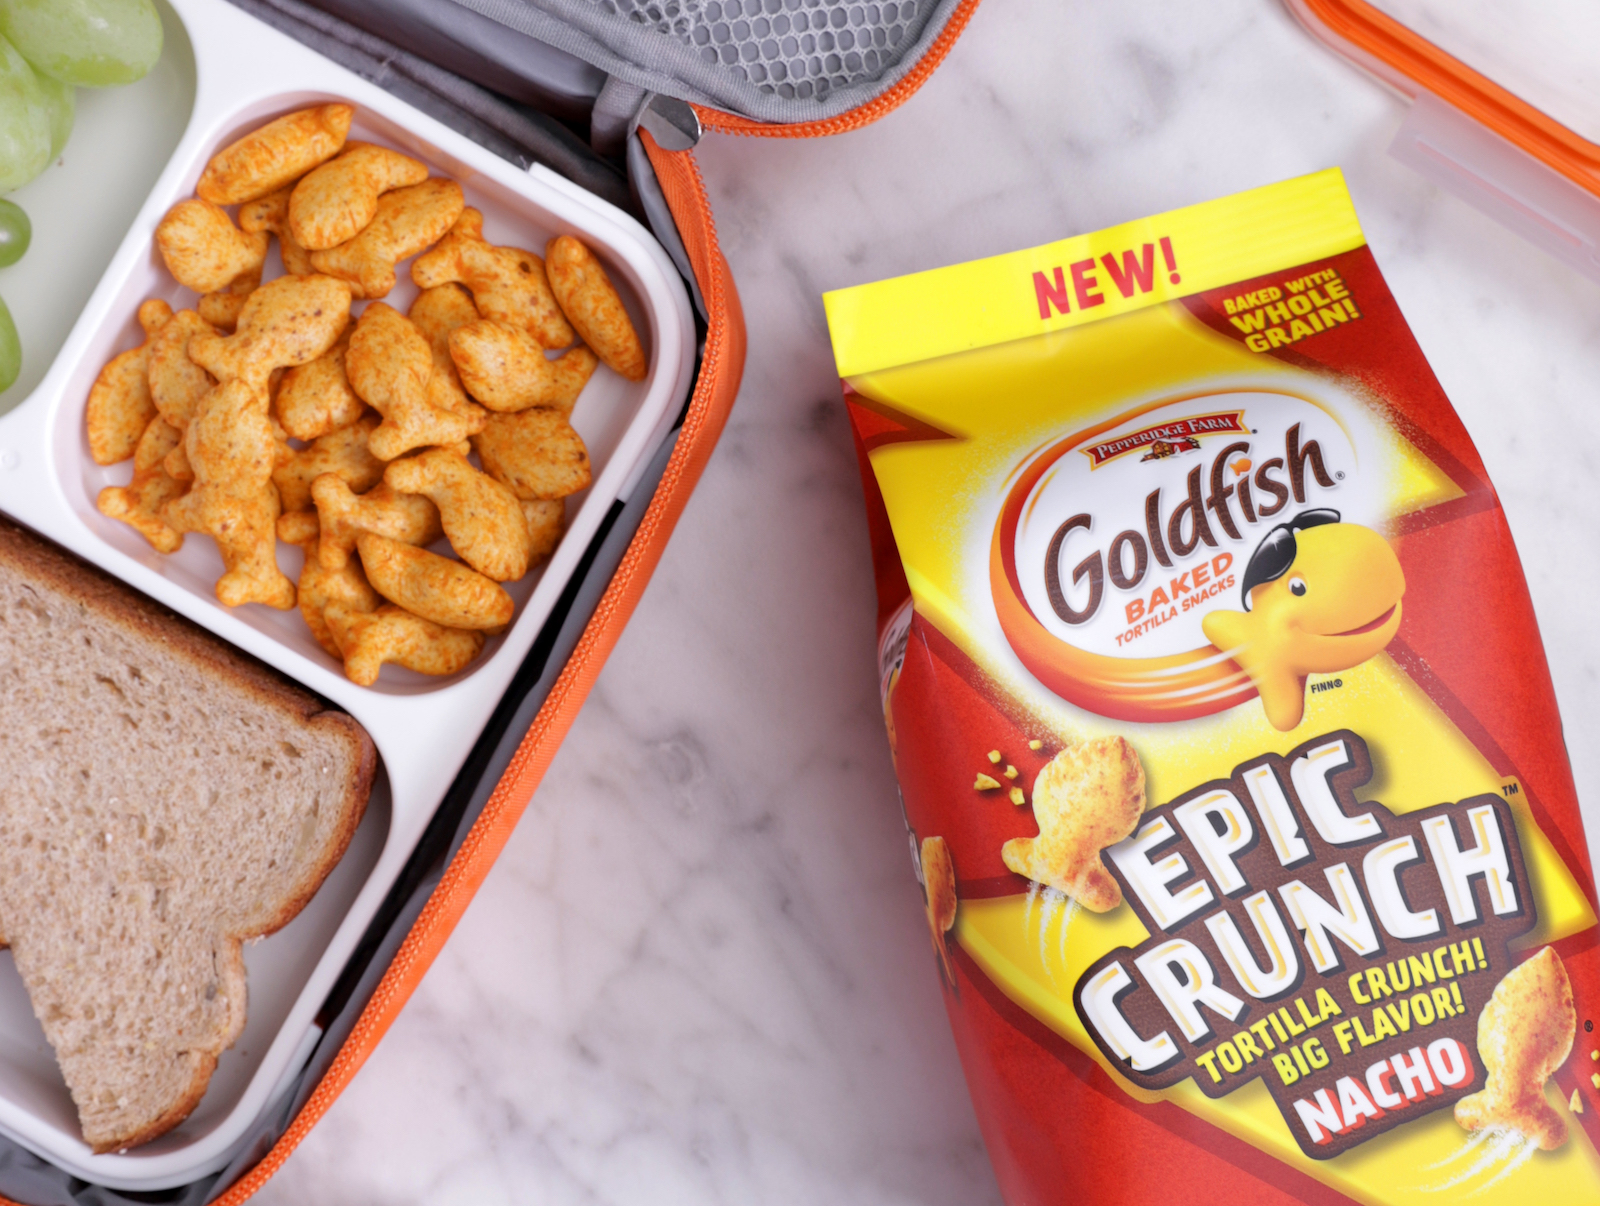 Goldfish Crackers Meet Tortilla Chips with 'Epic Crunch' Variety